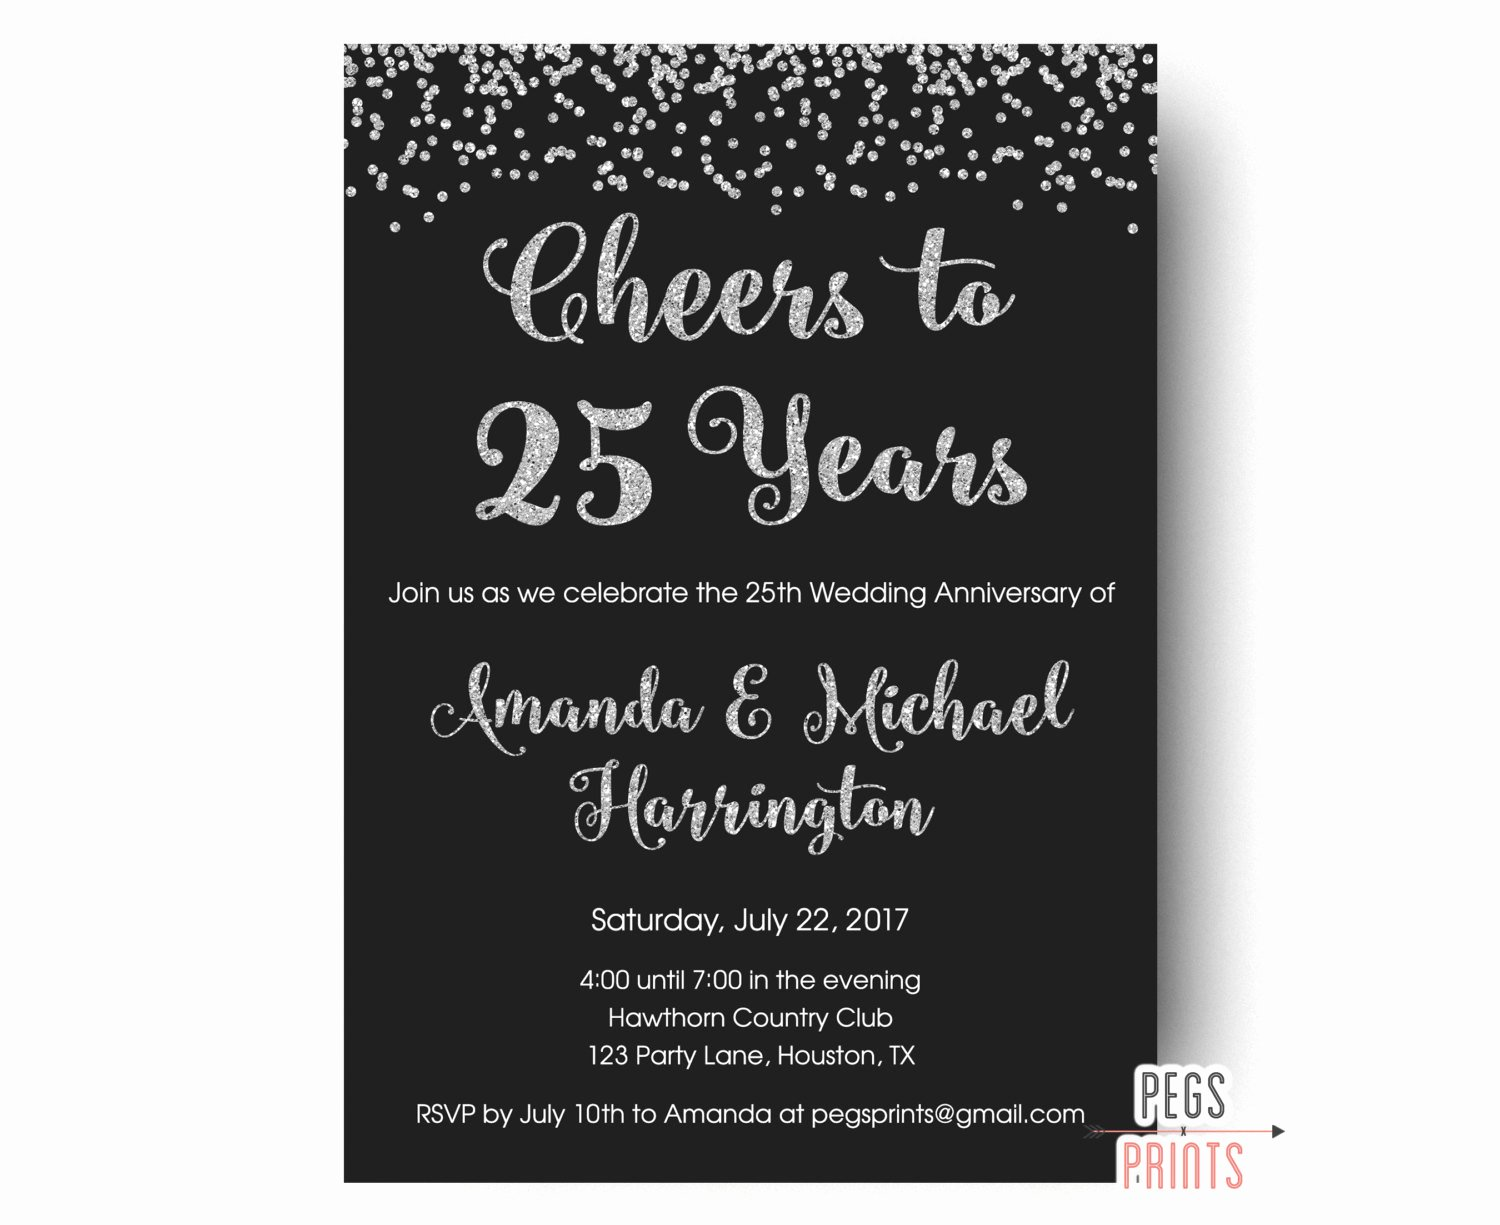 Wedding Anniversary Invitation Template Best Of 25th Anniversary Invitations Printable 25th Wedding